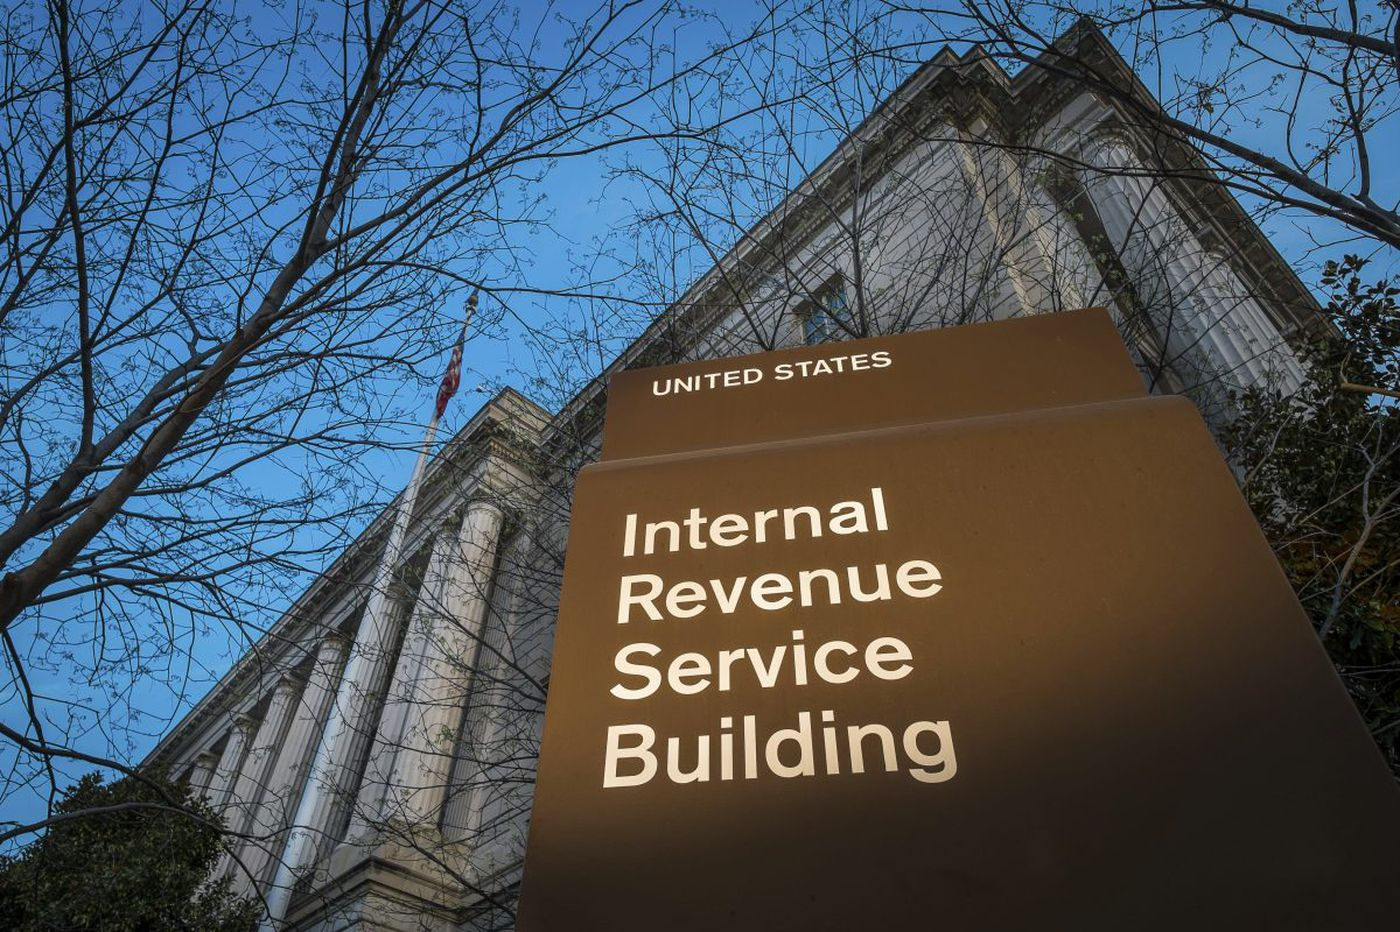 Don't shop or bank on public wifi, IRS warns. And the IRS never calls